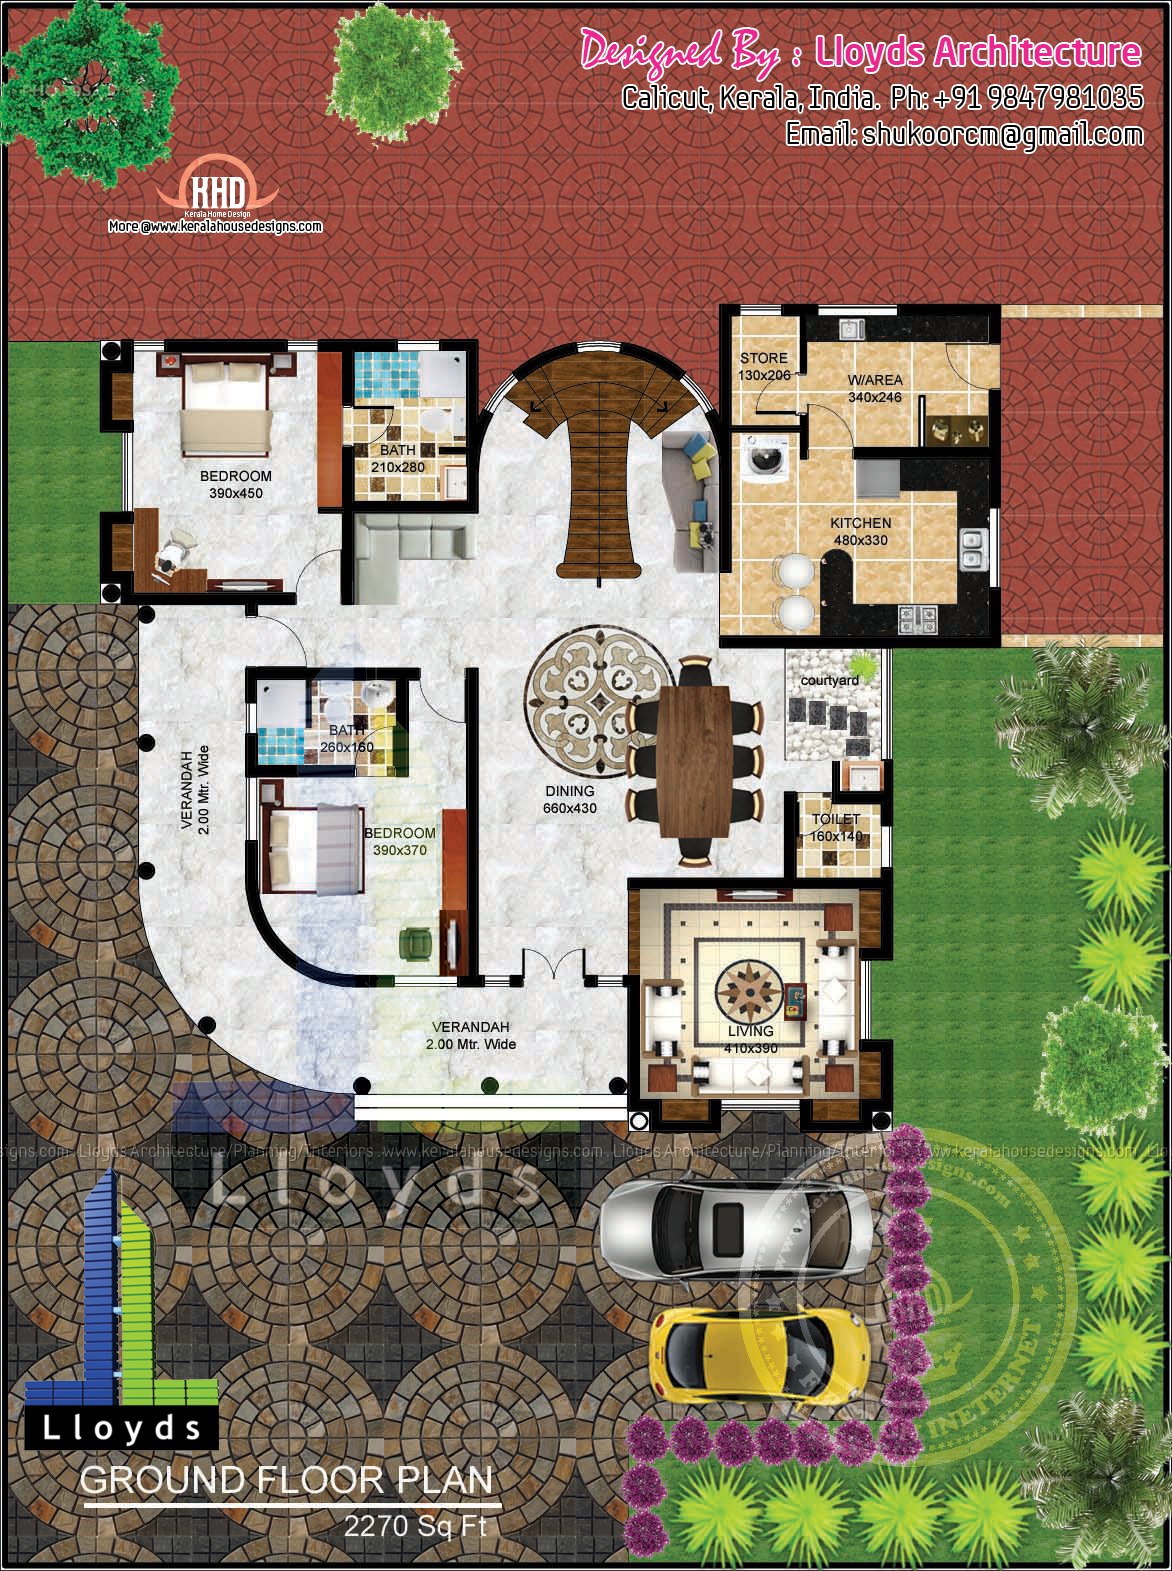 5 bedroom luxurious bungalow floor plan and 3d view for 5 bedroom bungalow house plans